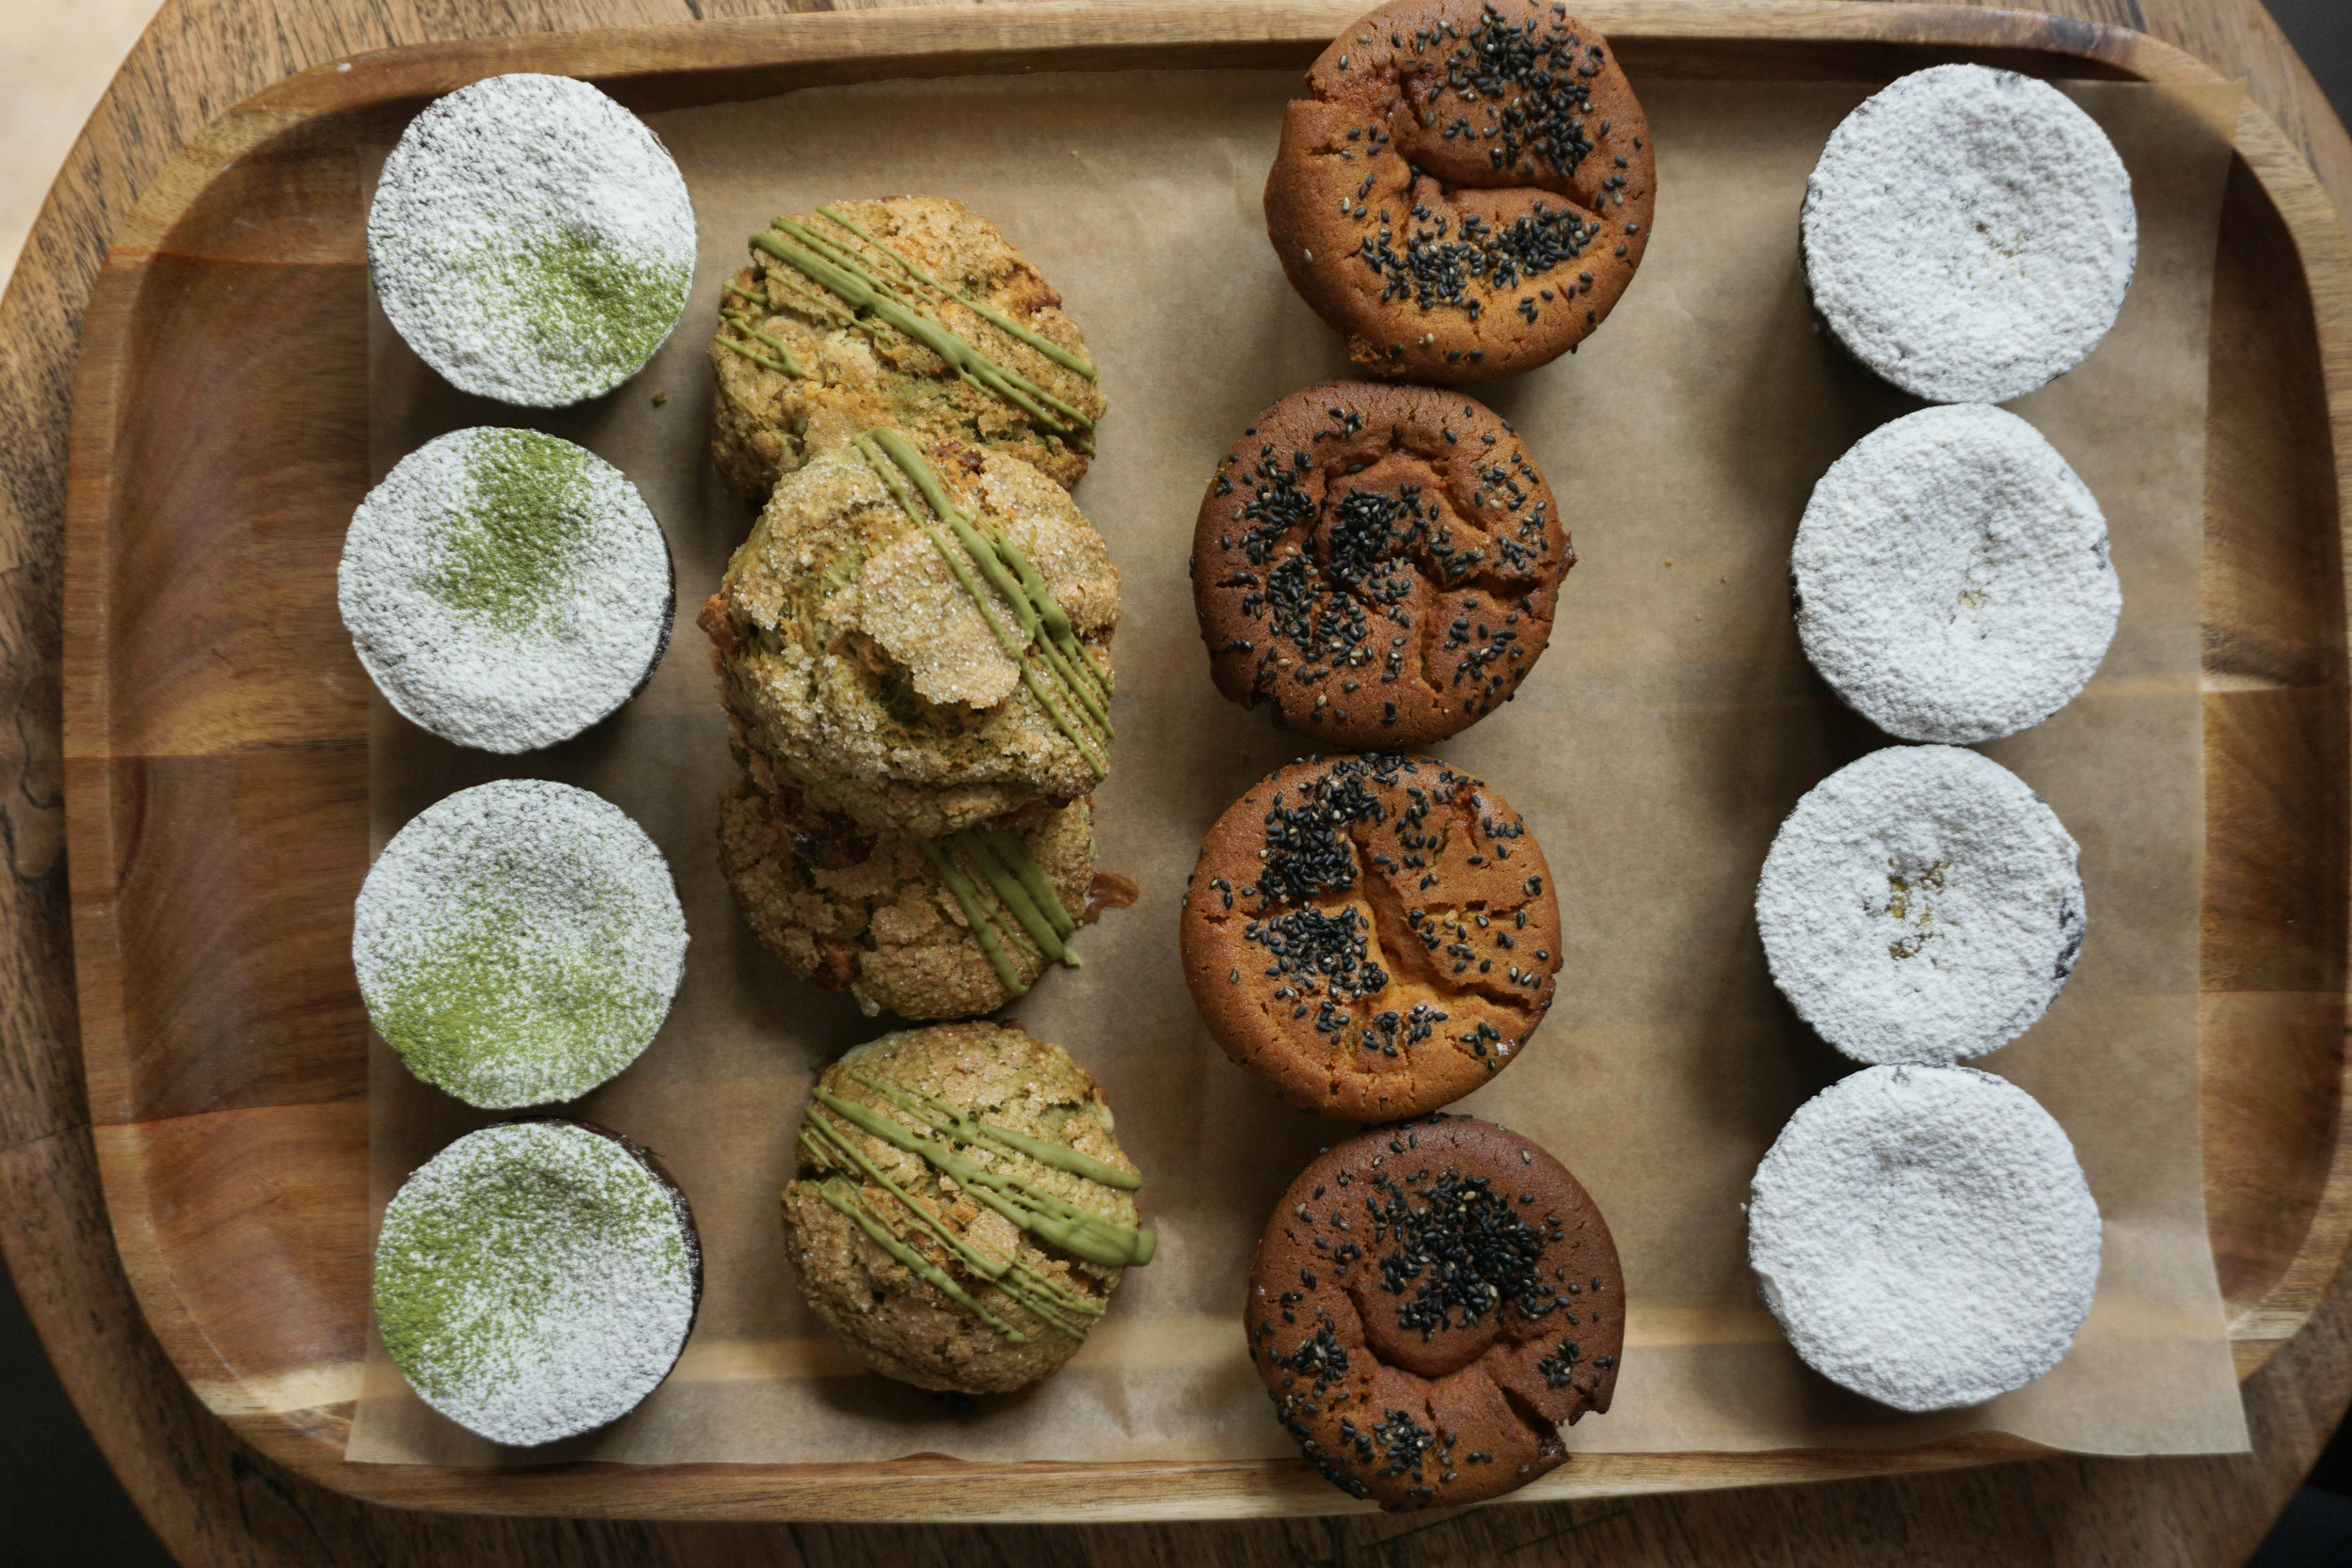 From the left: matcha custard cake, matcha white chocolate scone, mochi muffins, and rum custard cakes